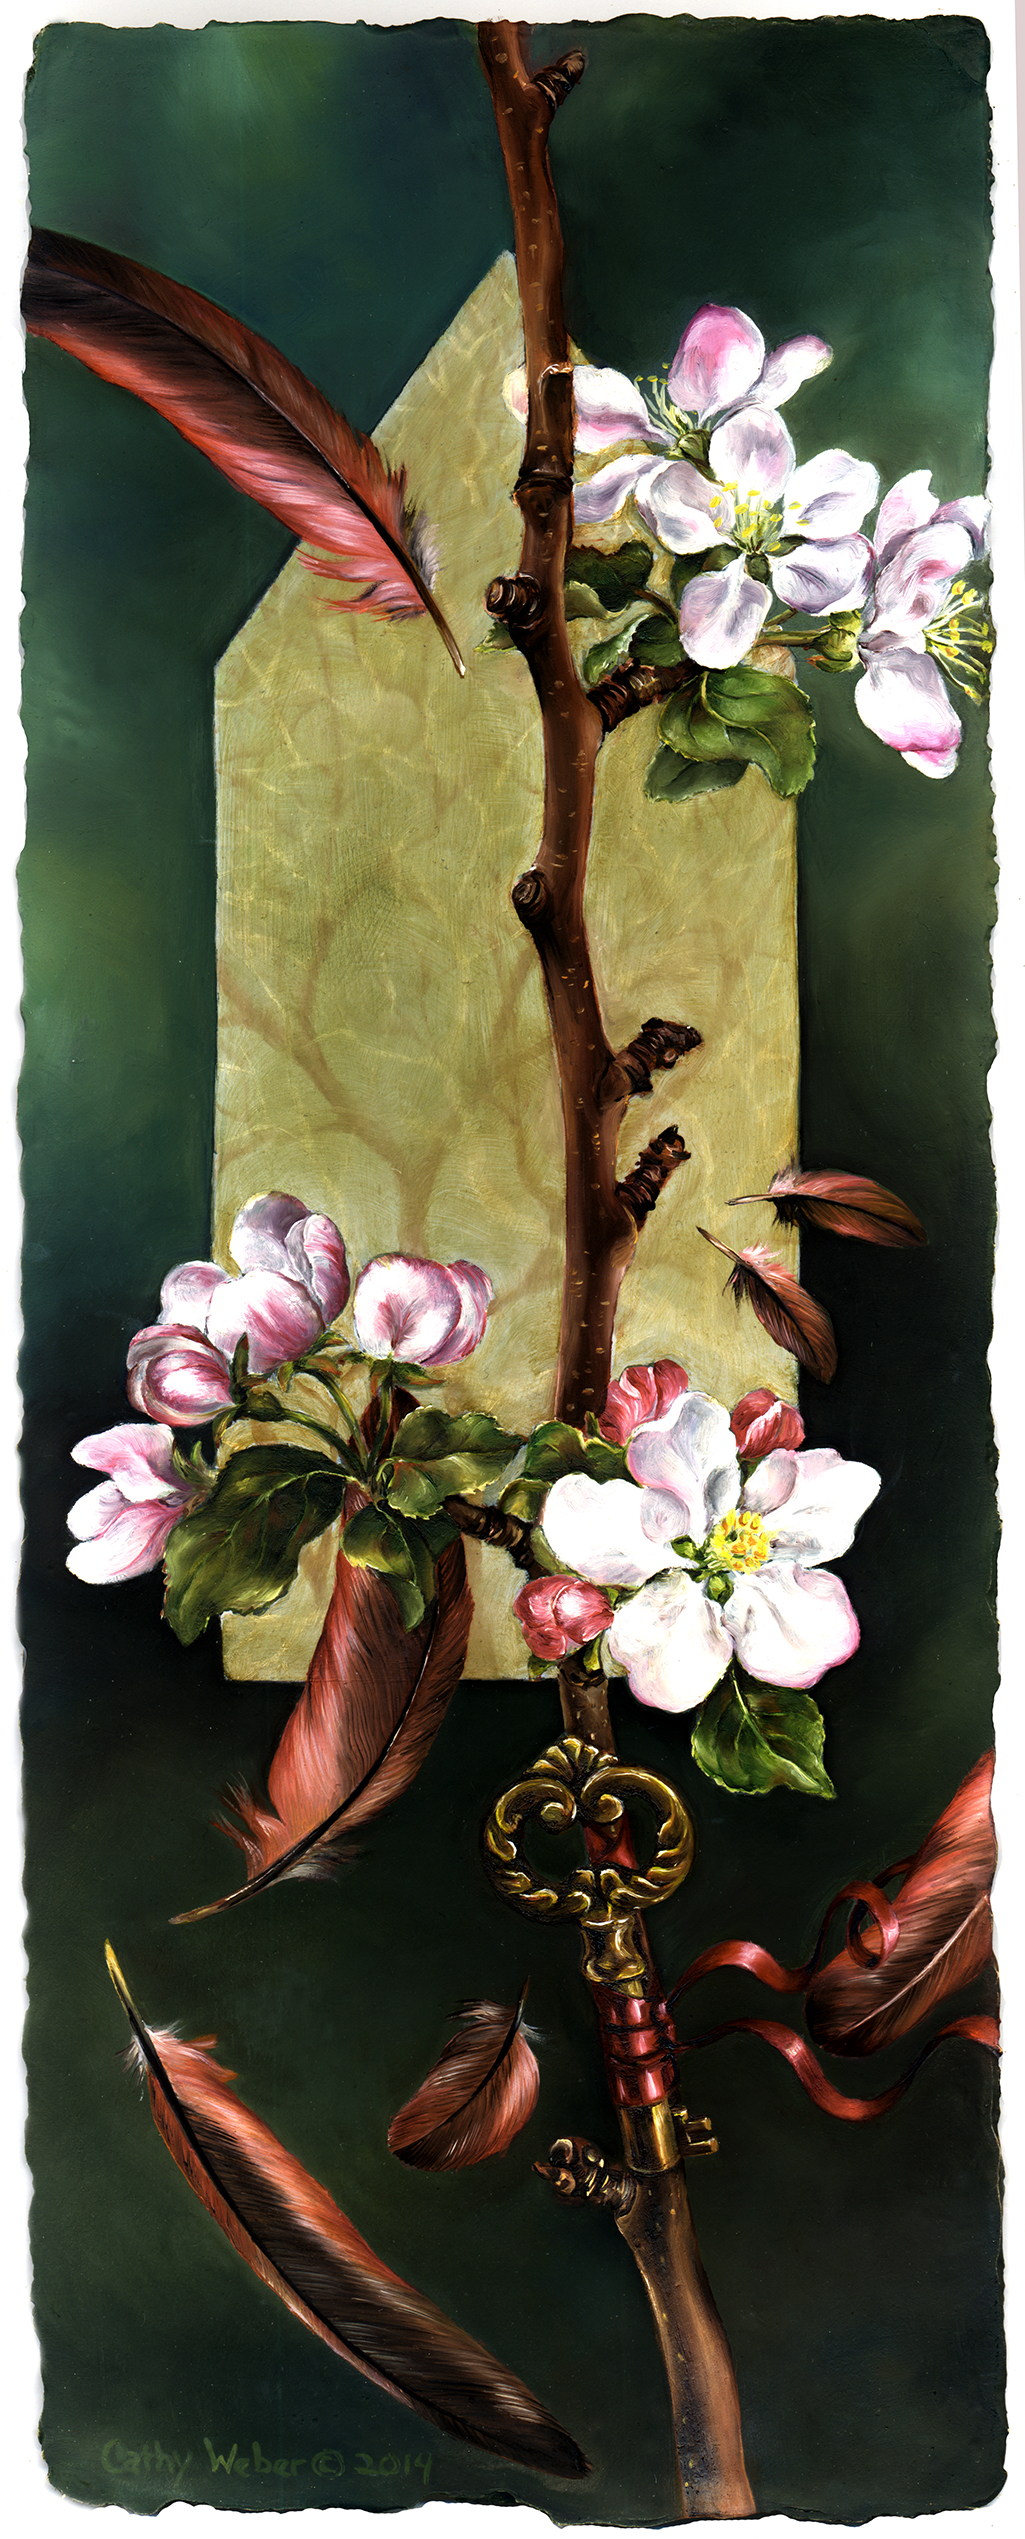 cathy weber - art - painting - woman - oil - montana - painting - oil - botanical - ribbon - apple - blossom - house - oil painting